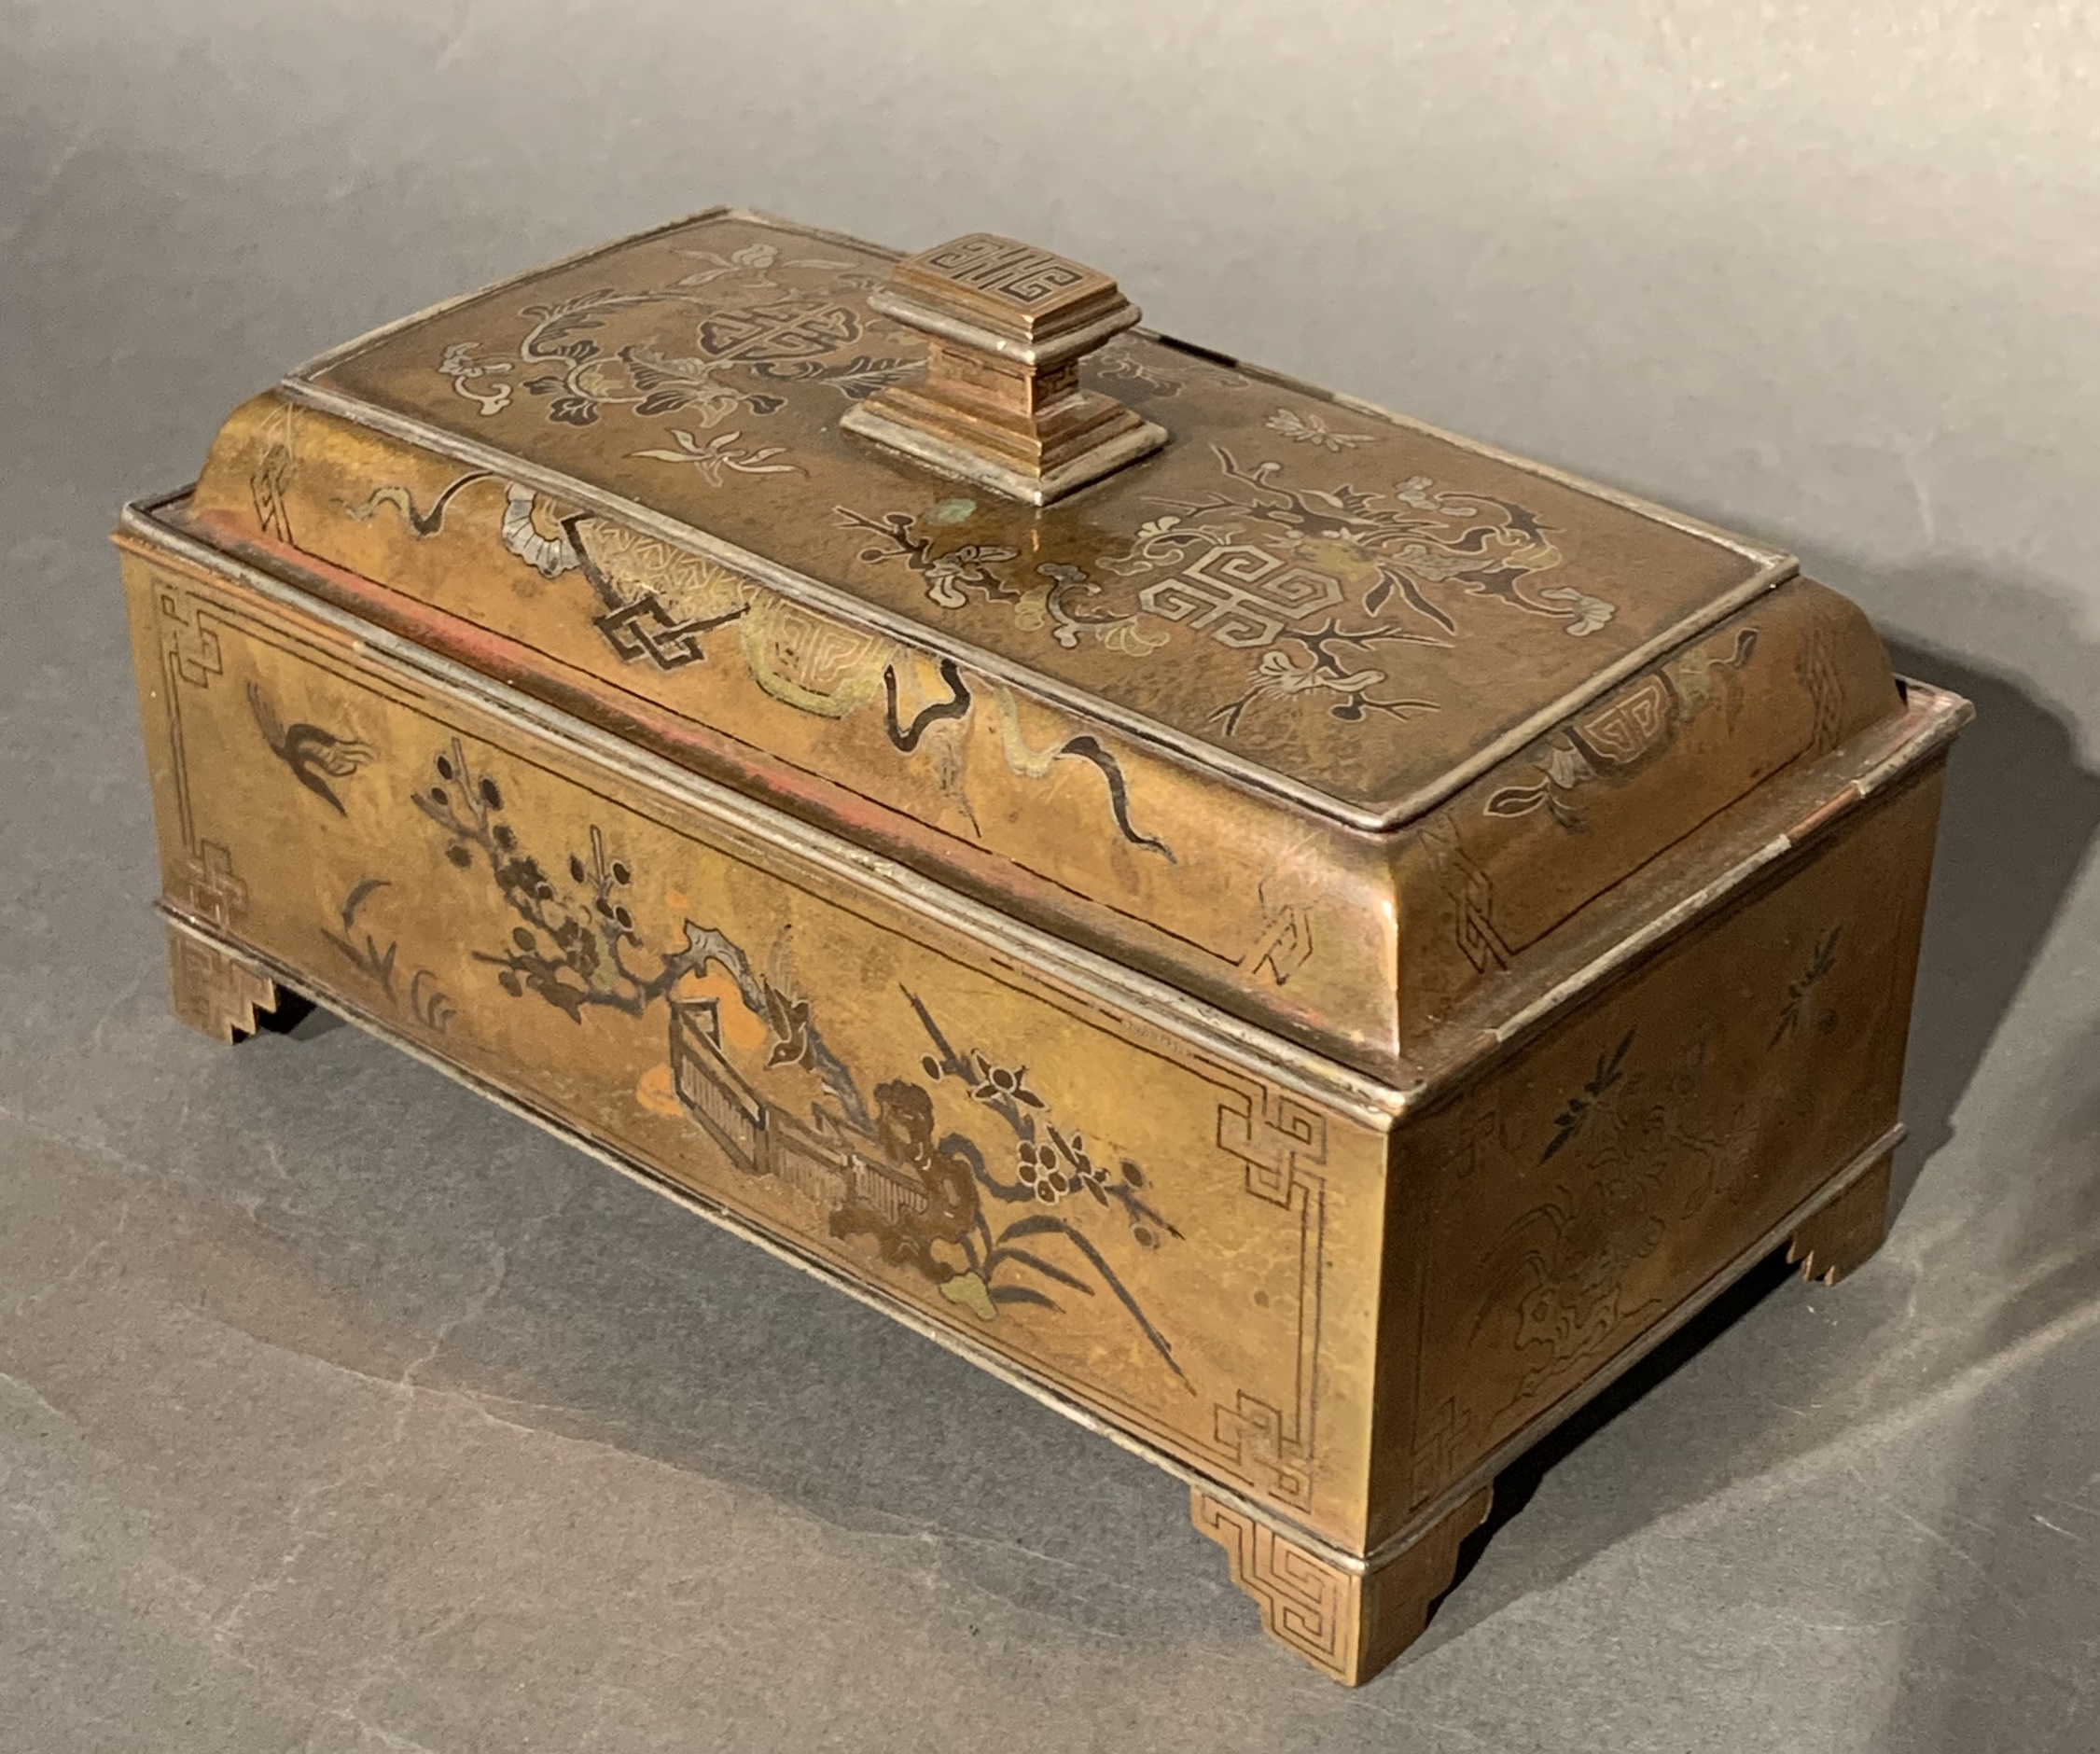 CHINESE COPPER BOX WITH MIXED METAL INLAYS. CHING DYNASTY